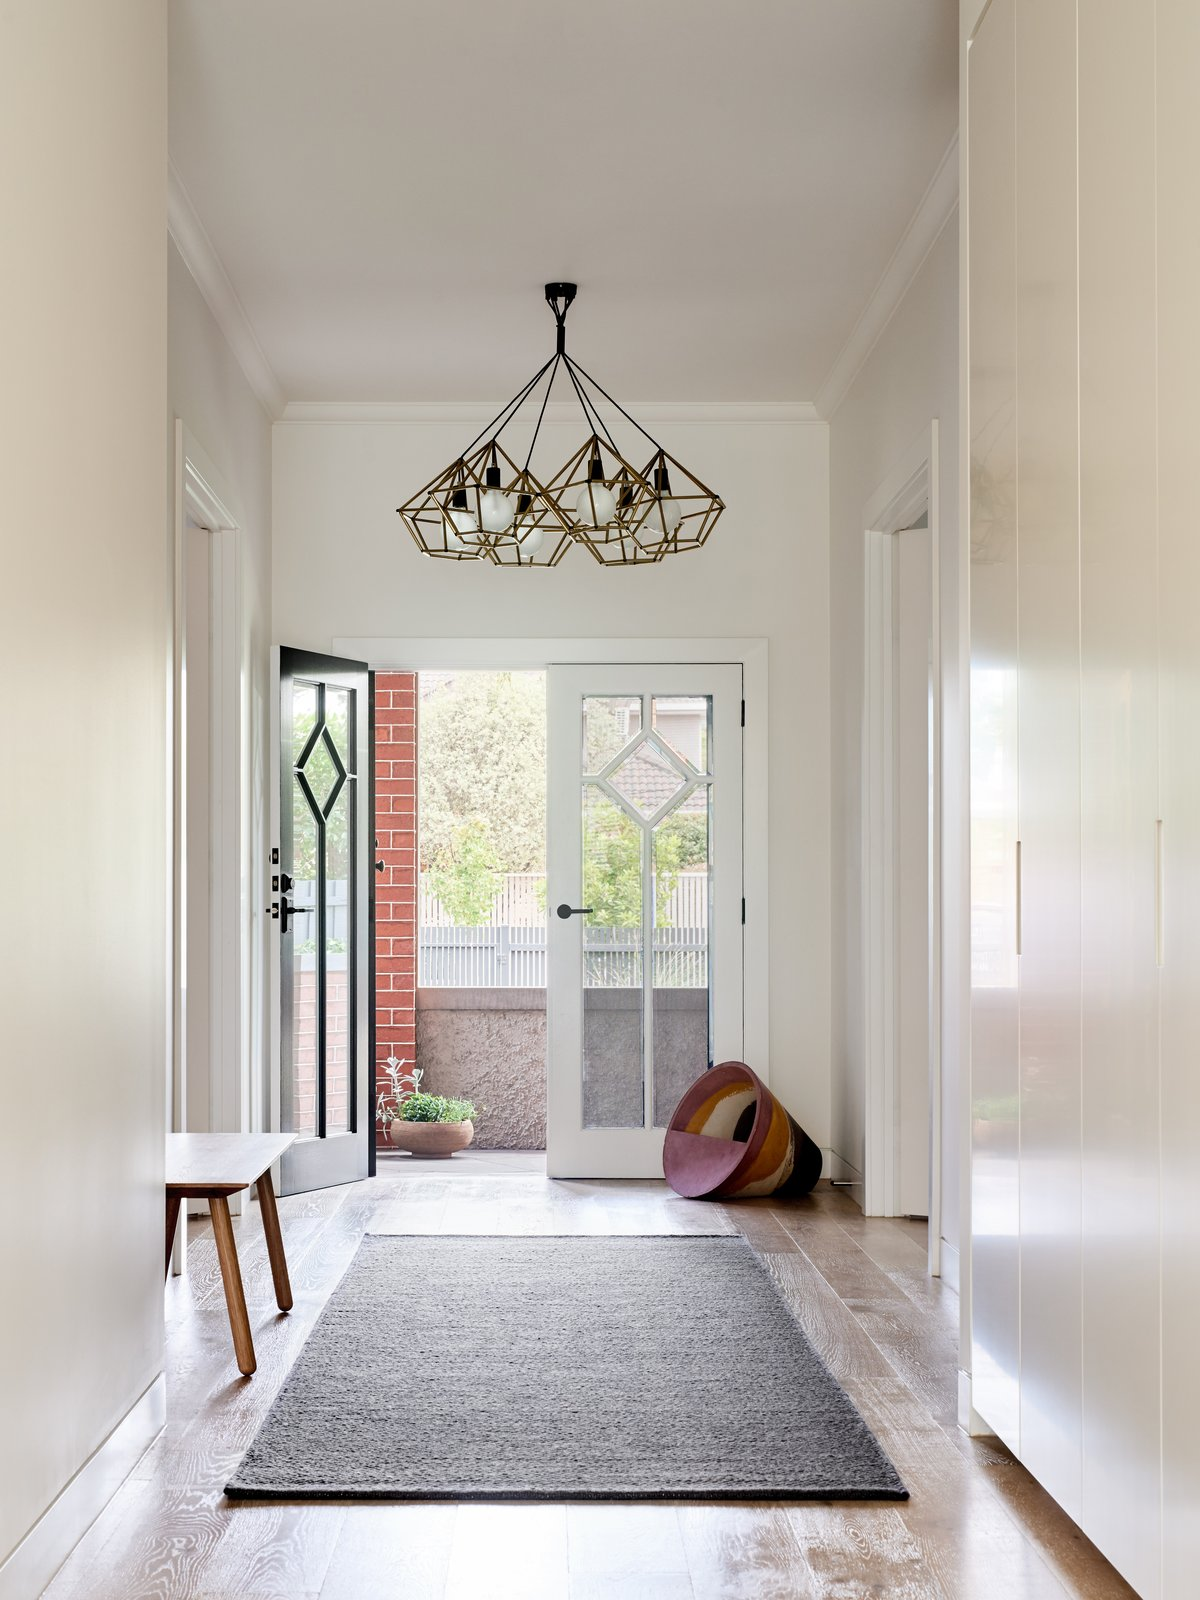 Hallway, Rug Floor, and Medium Hardwood Floor  Photo 5 of 10 in A Run-Down Melbourne Bungalow's Makeover Embraces Light and Family Life